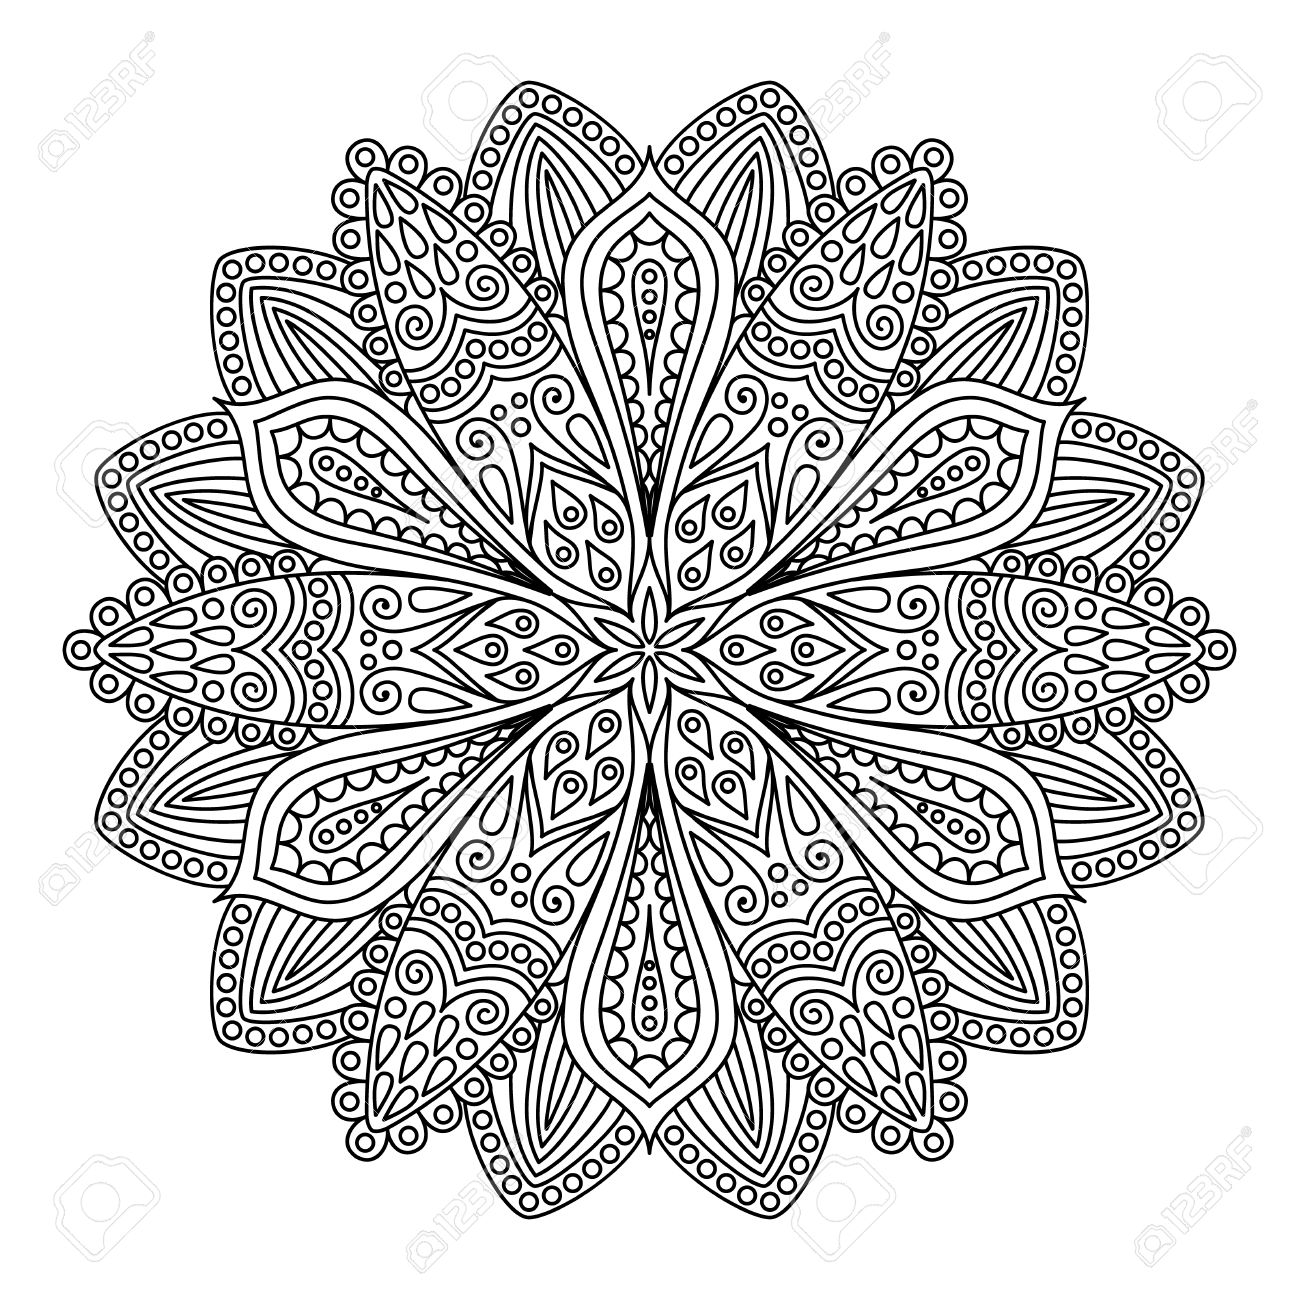 Line Flower Coloring Page Monochrome Image Black And White Unusual Floral Pattern For